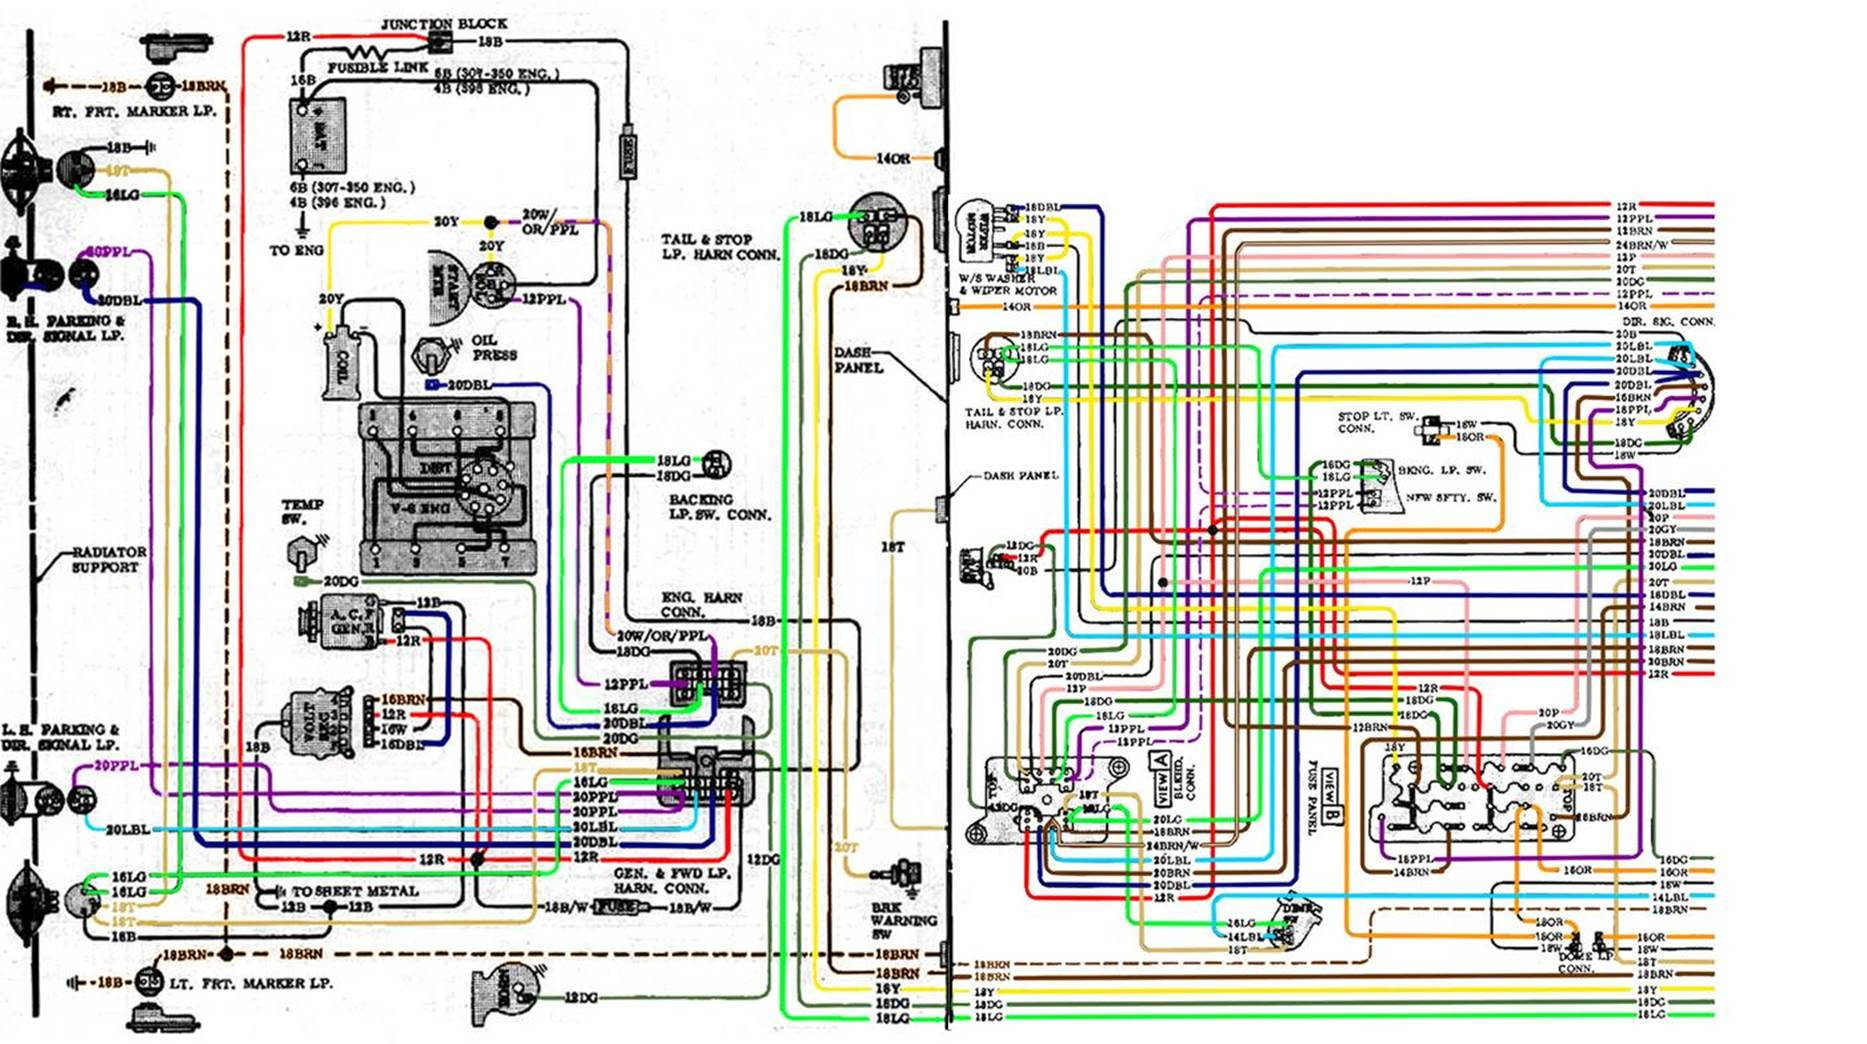 image002 67 72 chevy wiring diagram 69 chevelle dash wiring diagram at mifinder.co